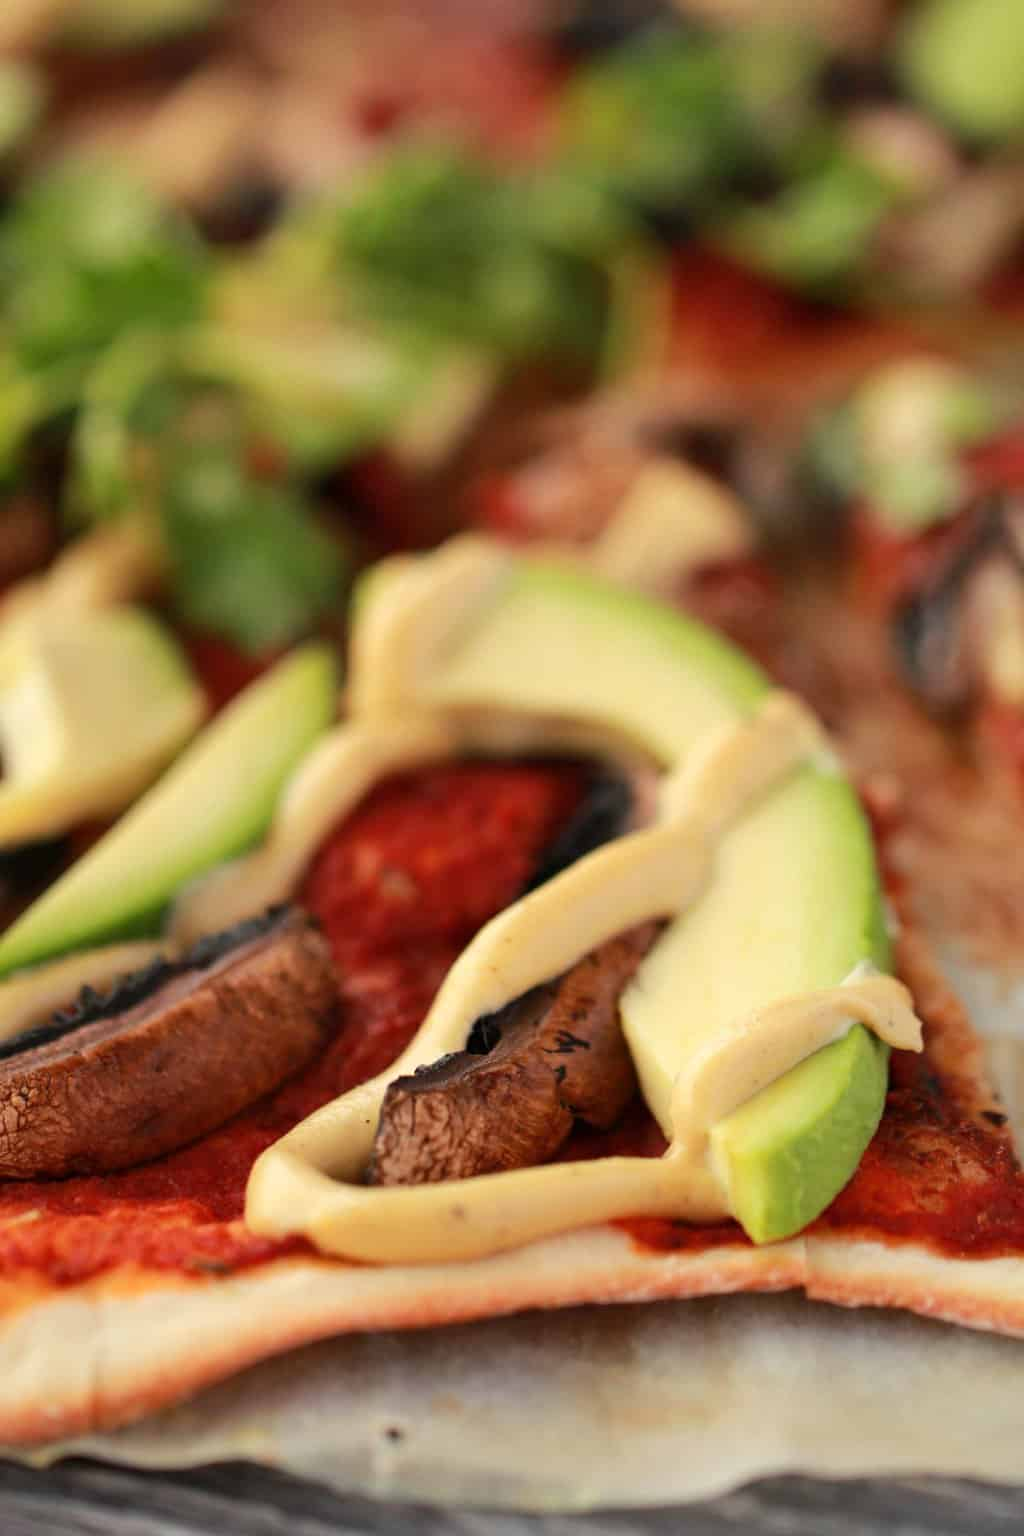 Close up shot of homemade pizza topped with tomato sauce, black mushrooms, sliced avocado and cashew cheese